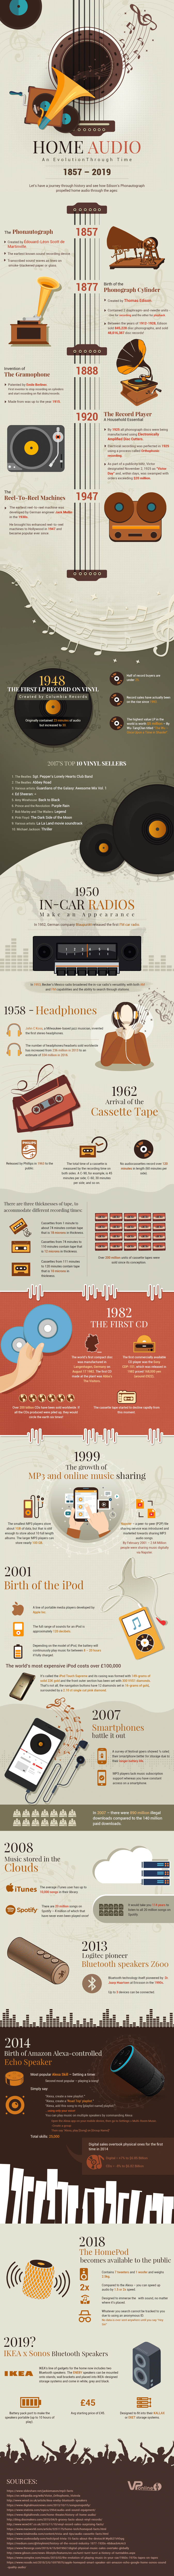 How audio evolved from 1857 to the vinyl revival